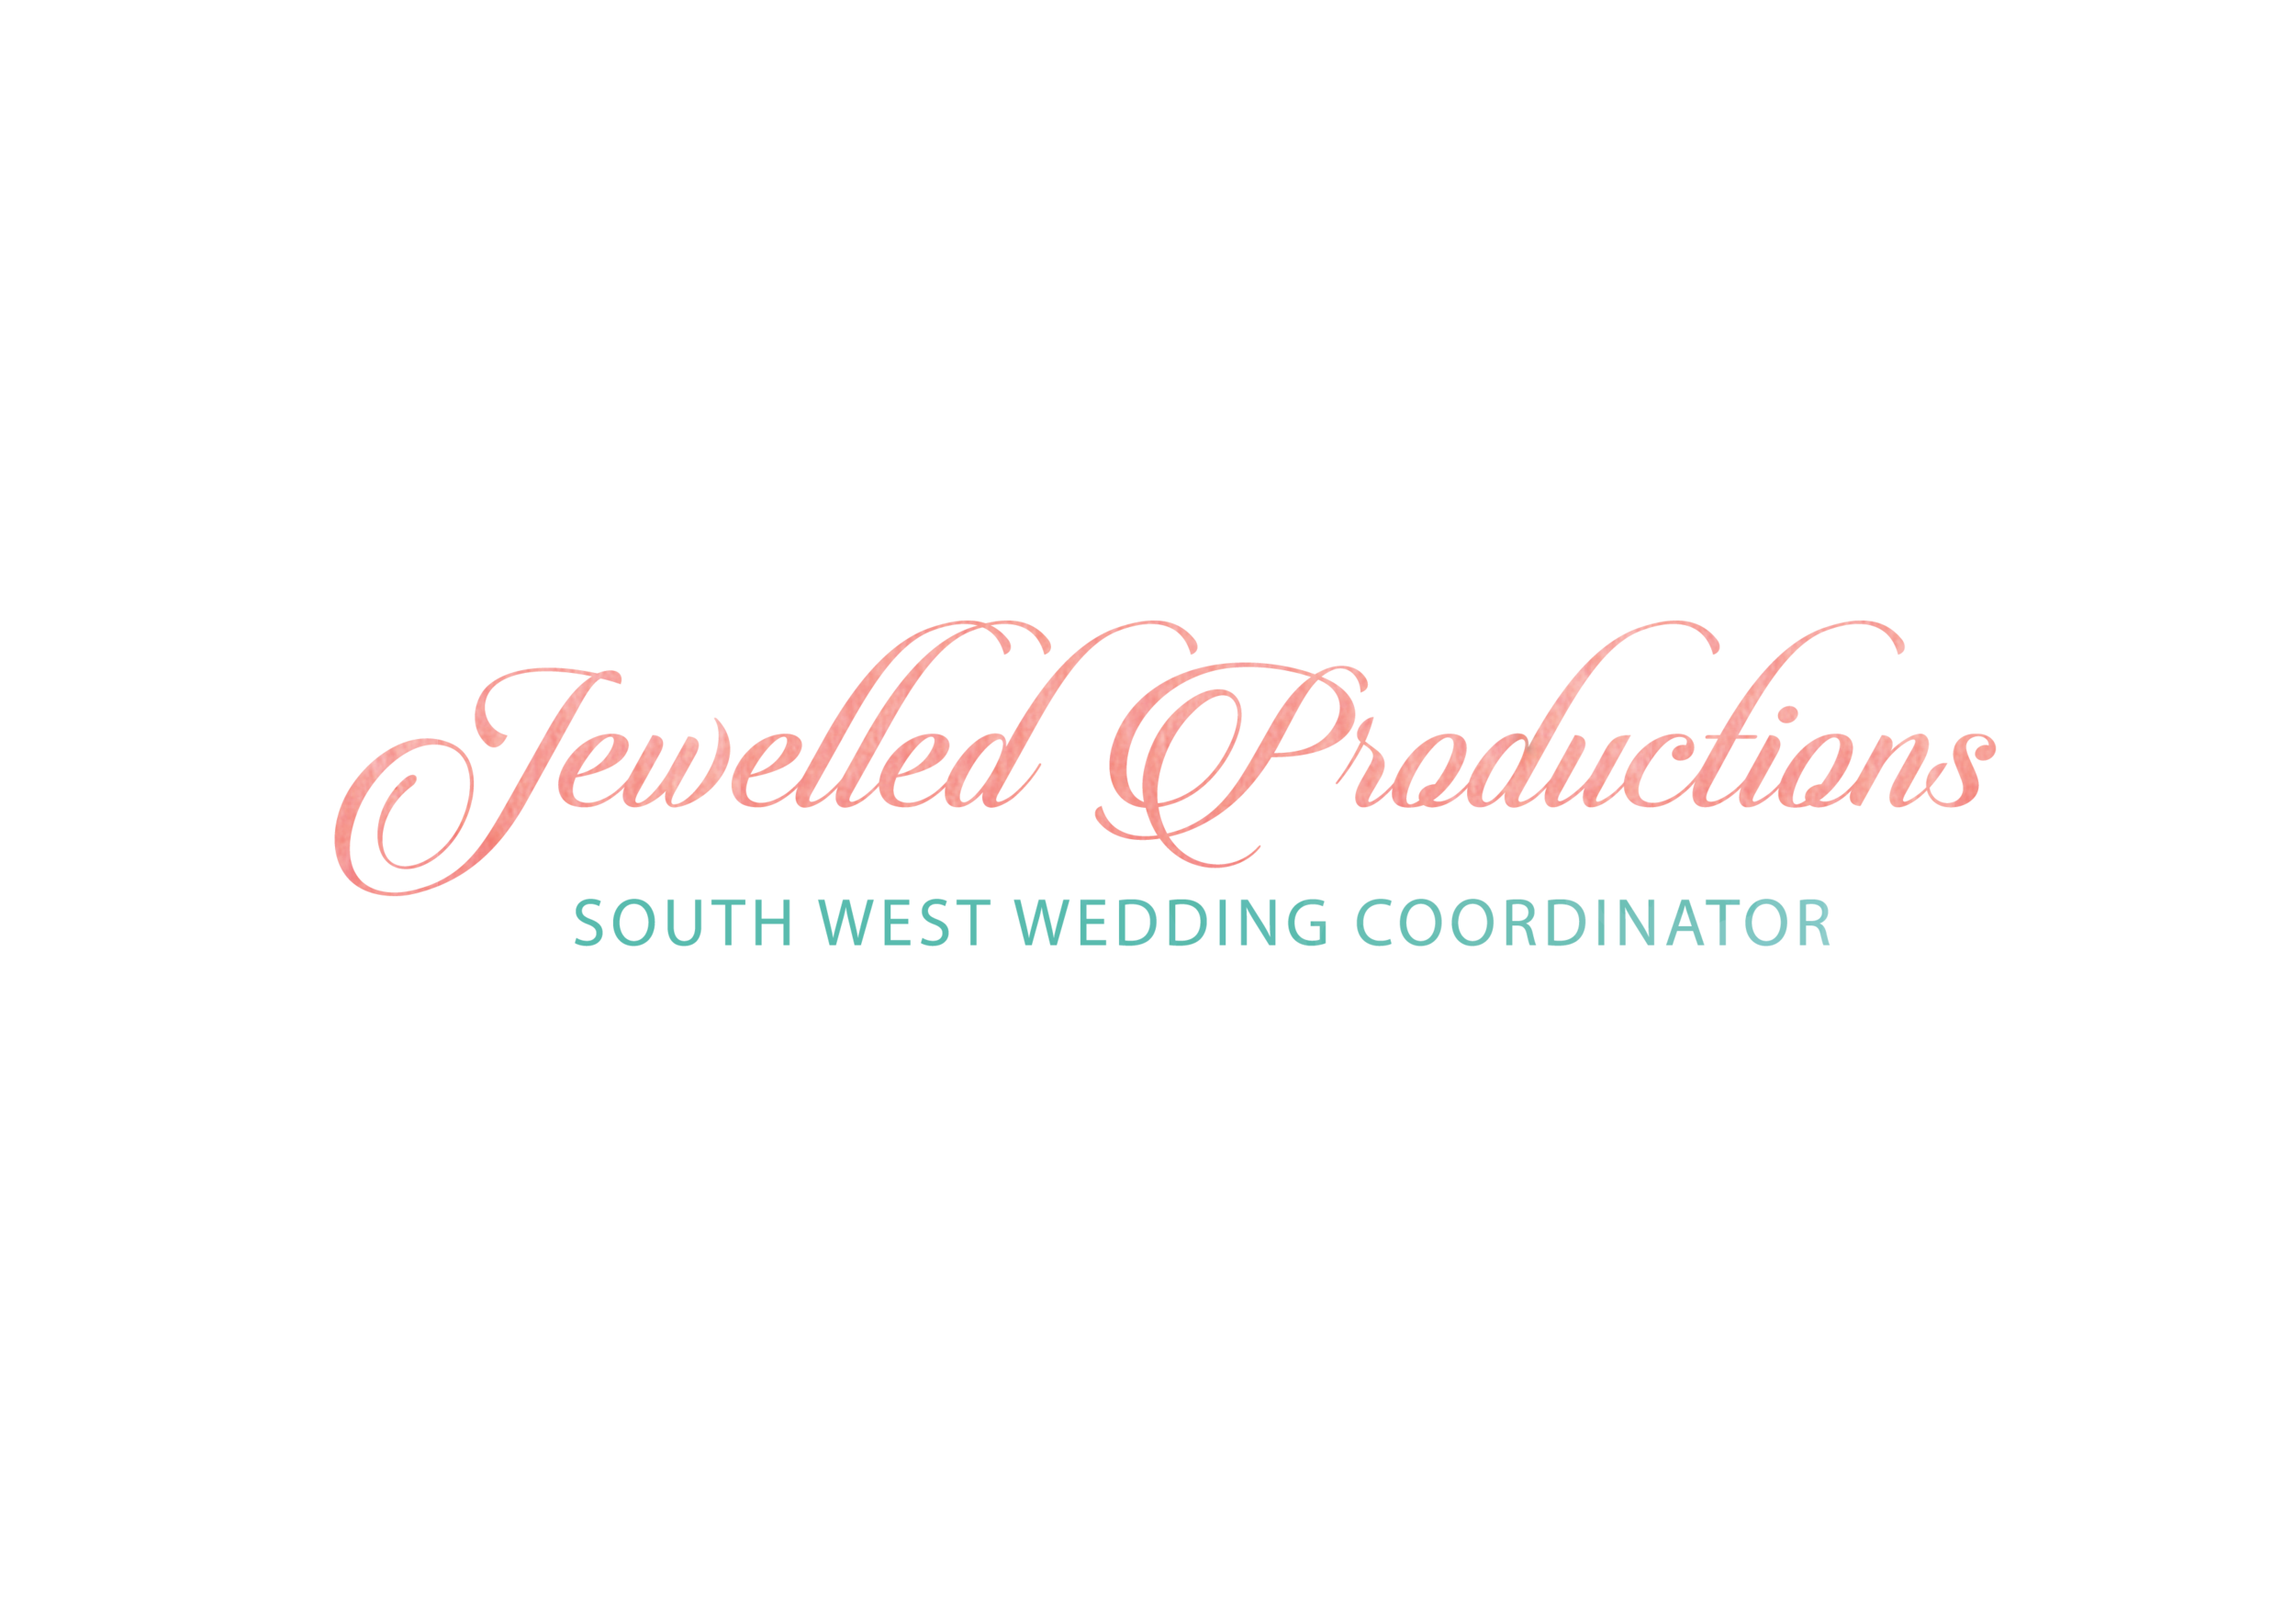 Jewelled_Productions_Full_name.png